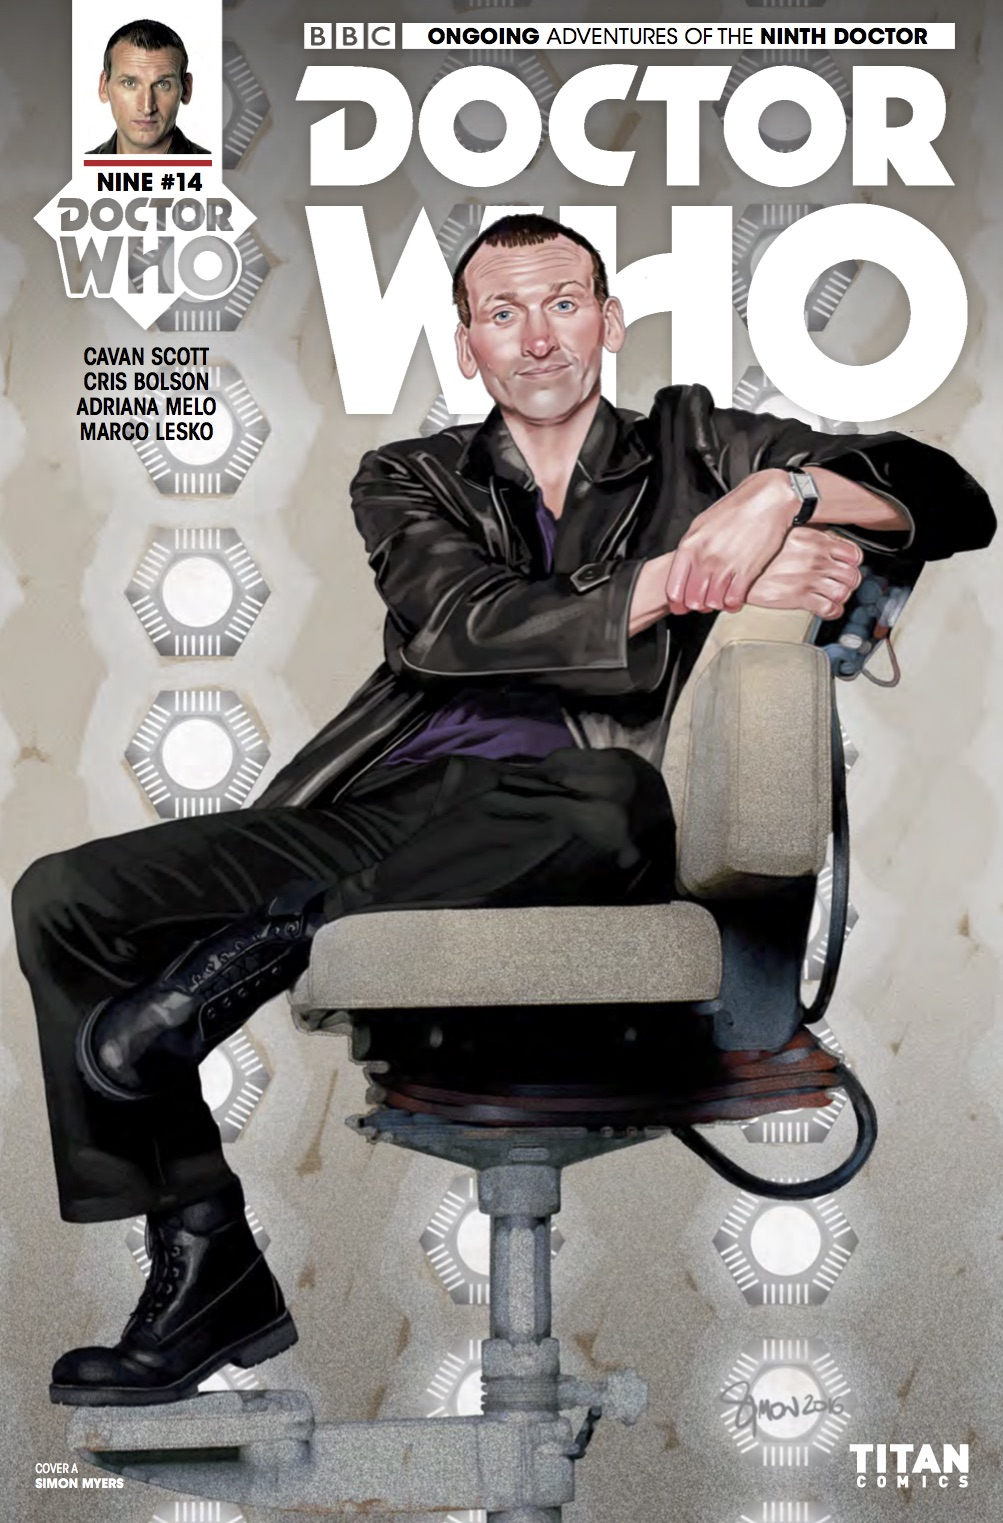 Preview: Doctor Who: The Ninth Doctor #14